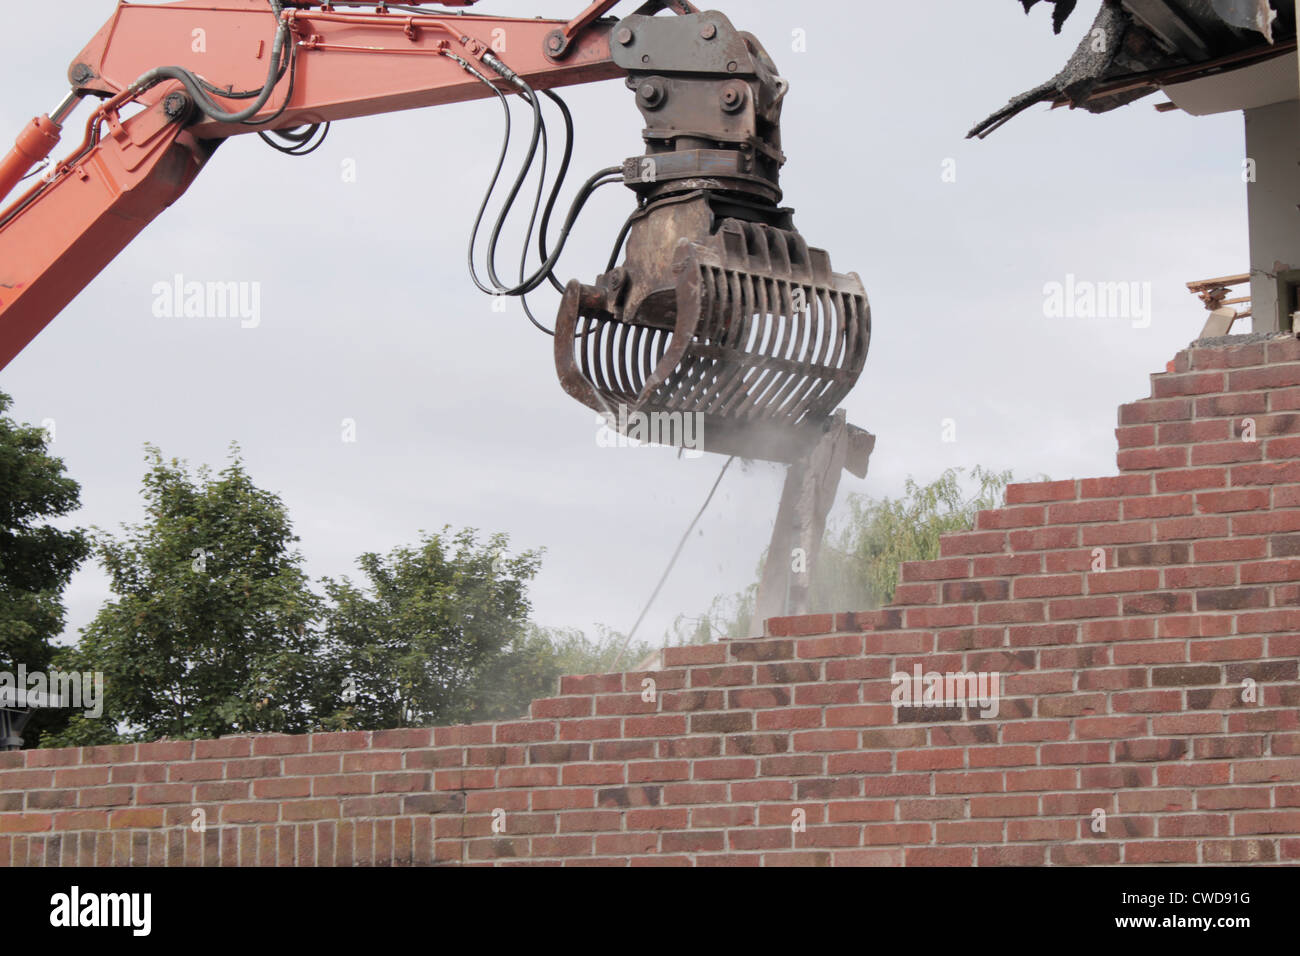 Mechanical grab demolishing old building - Stock Image